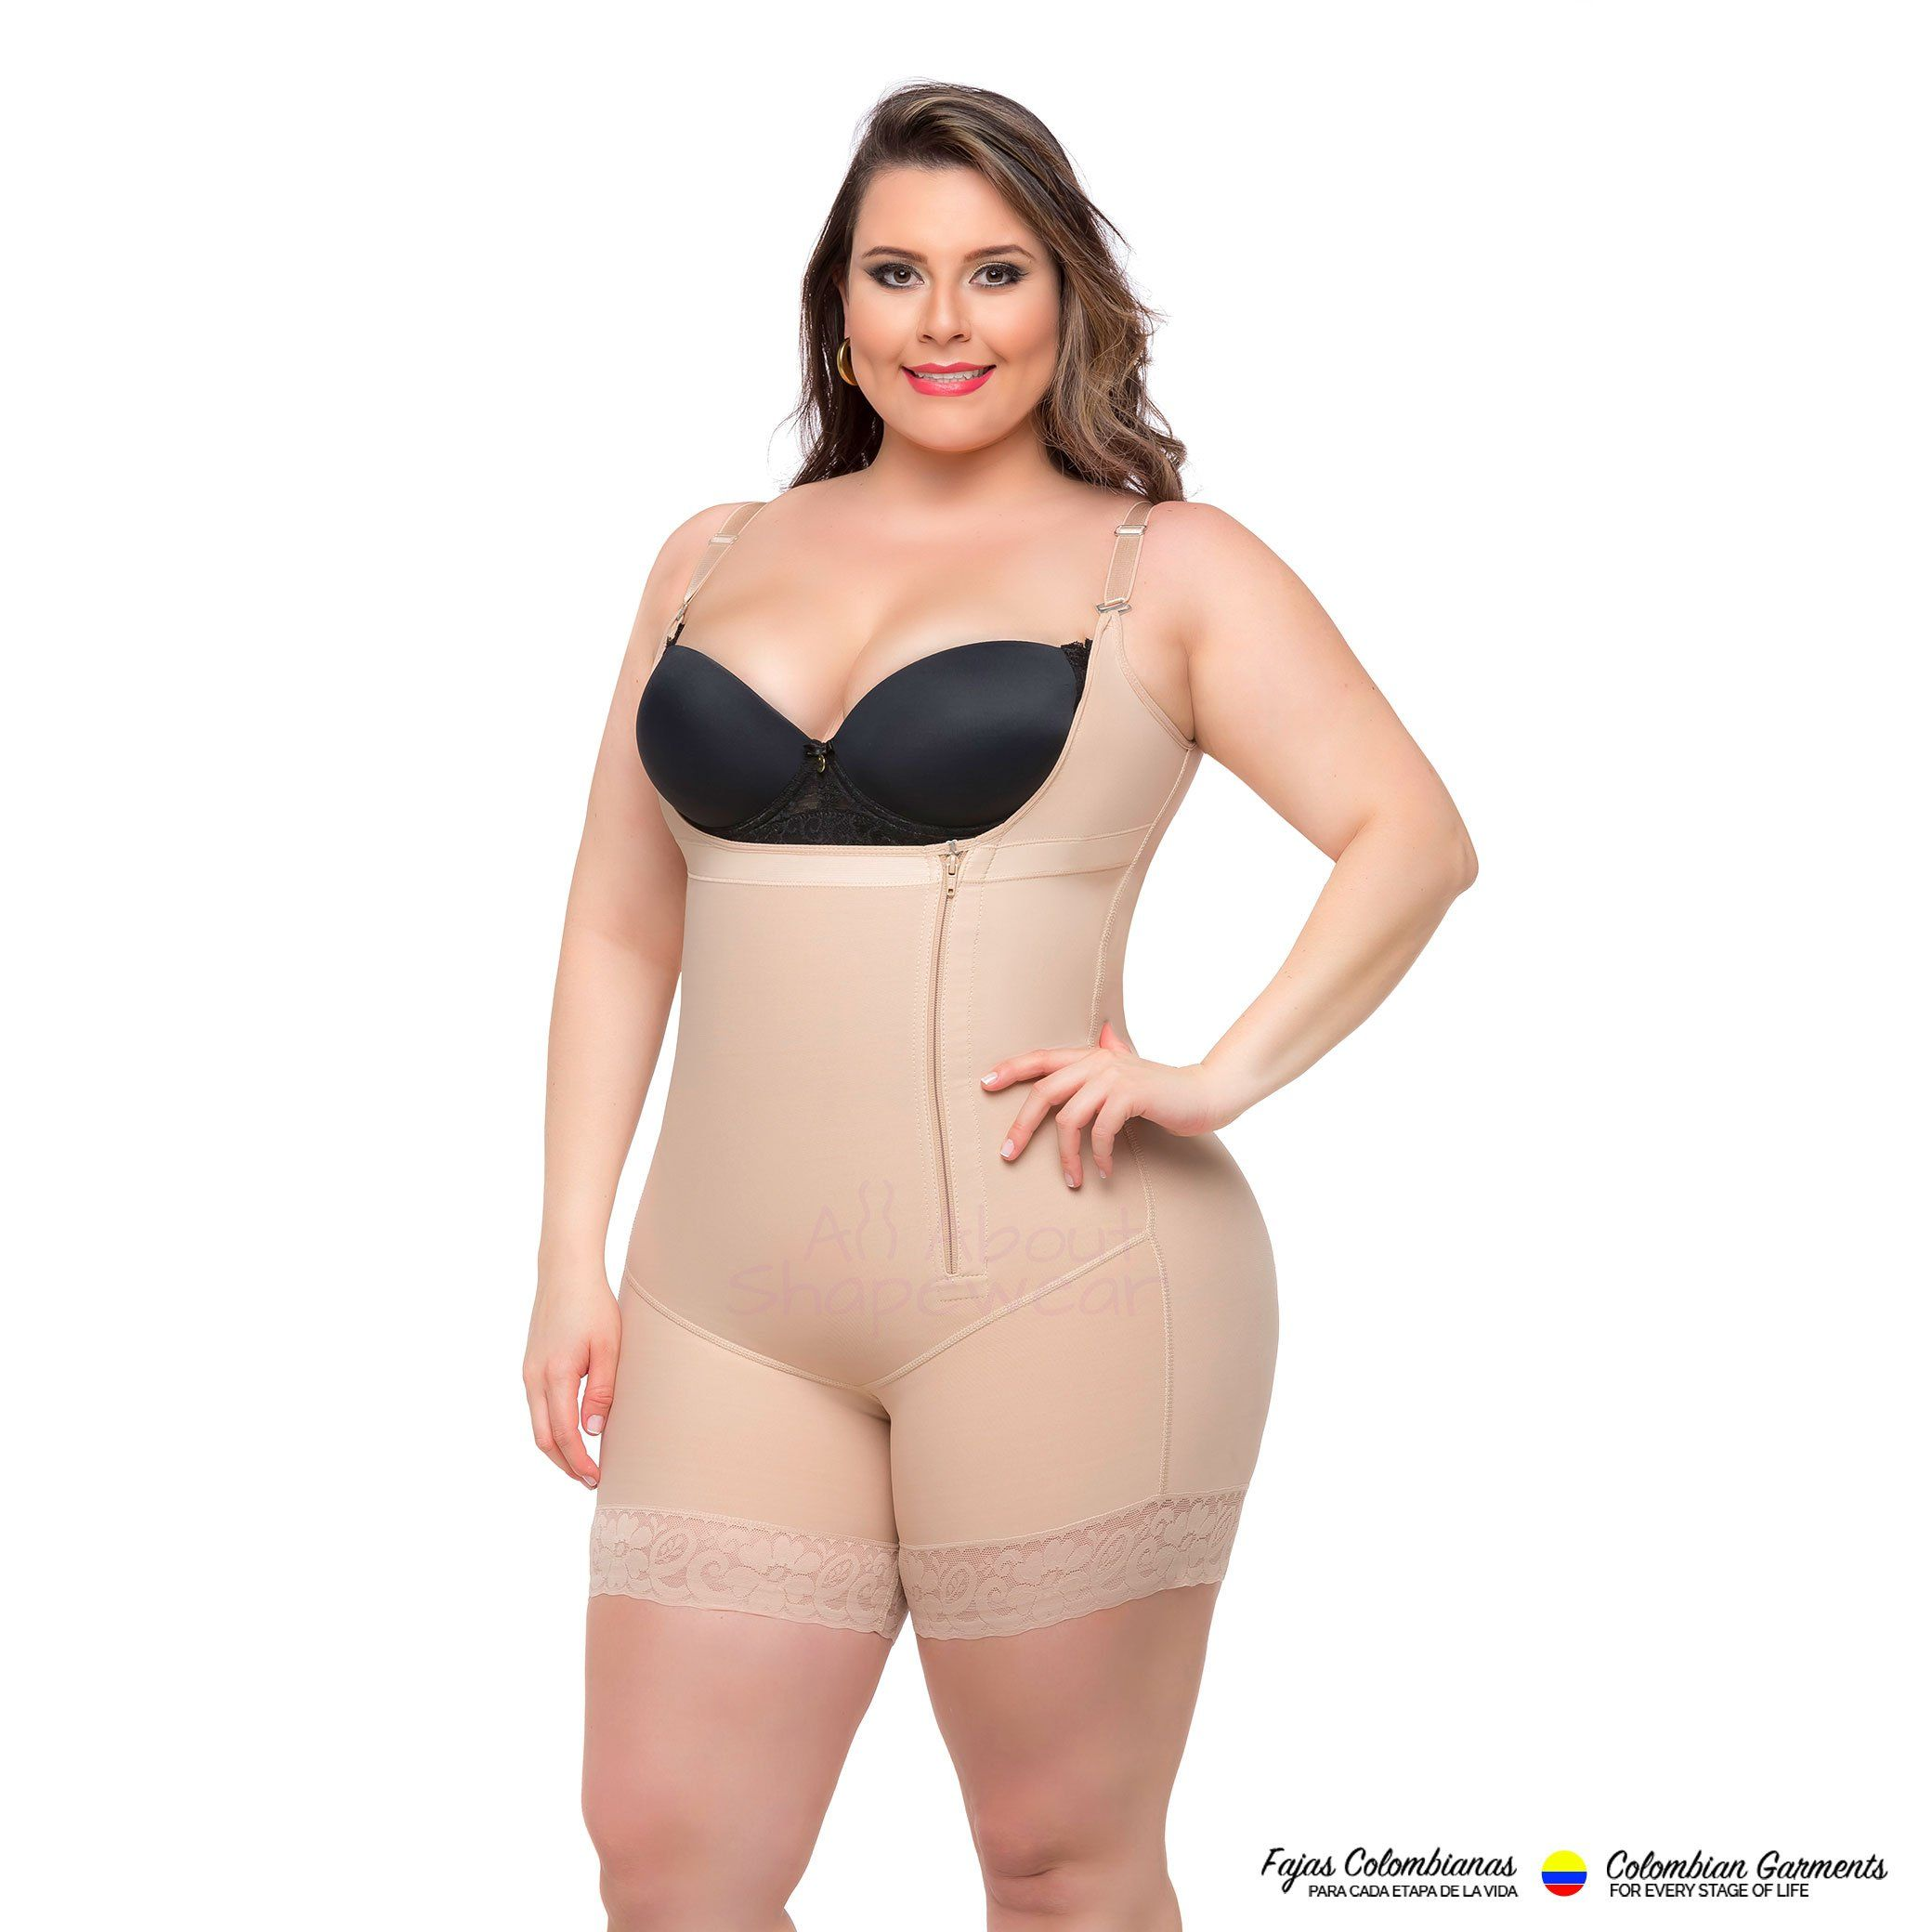 a57fb10186c0b Fajas Colombianas Shaper Short Style with Butt Lifter   Adjustable Straps -  Ref 036